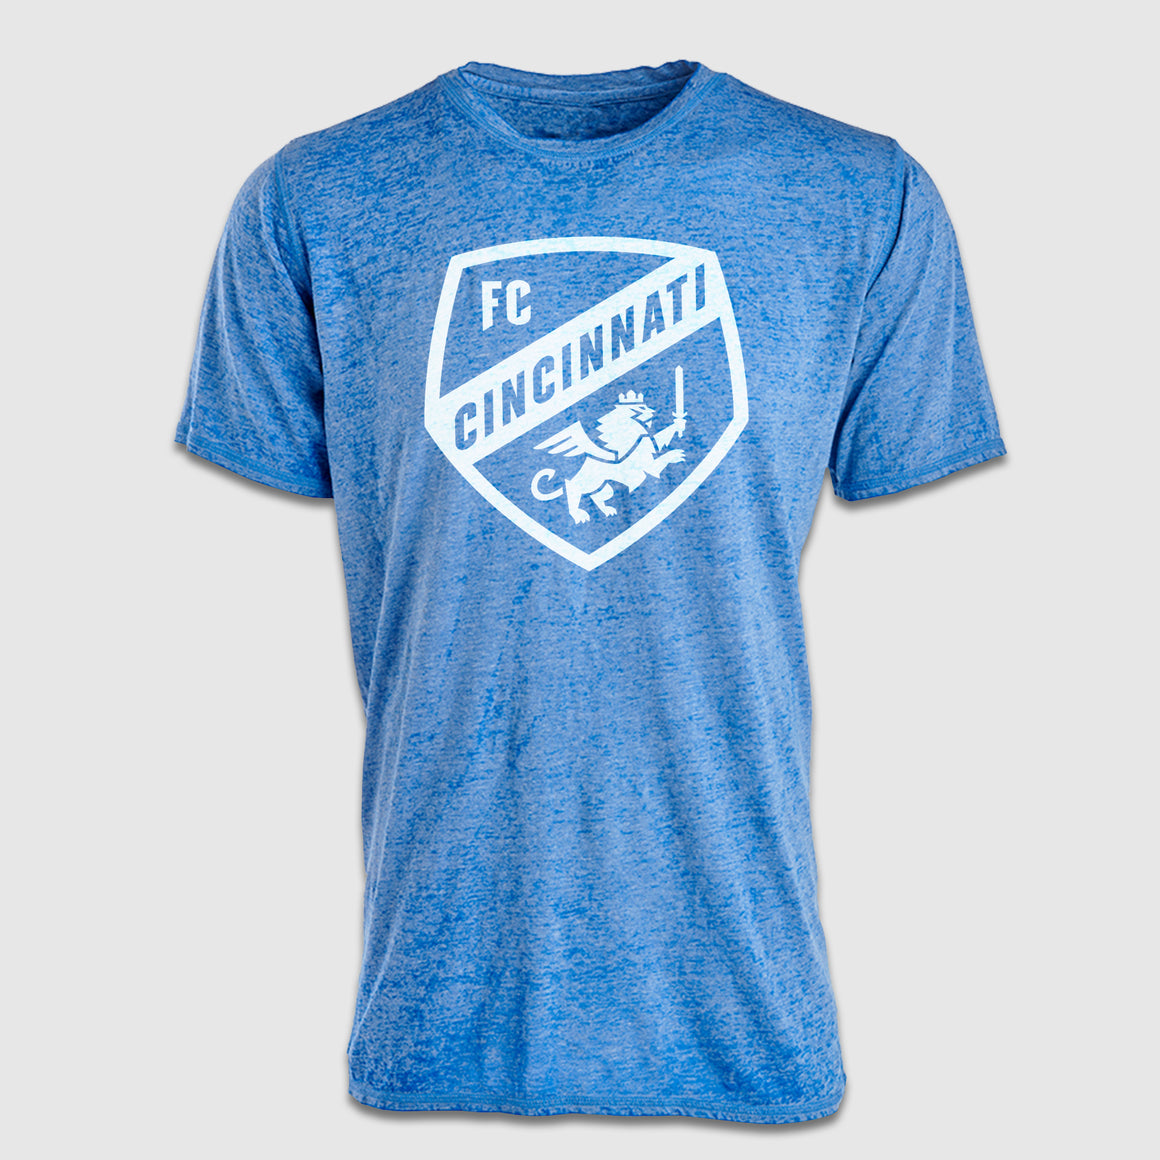 FC Cincinnati Primary Shield Unisex Distressed T-Shirt